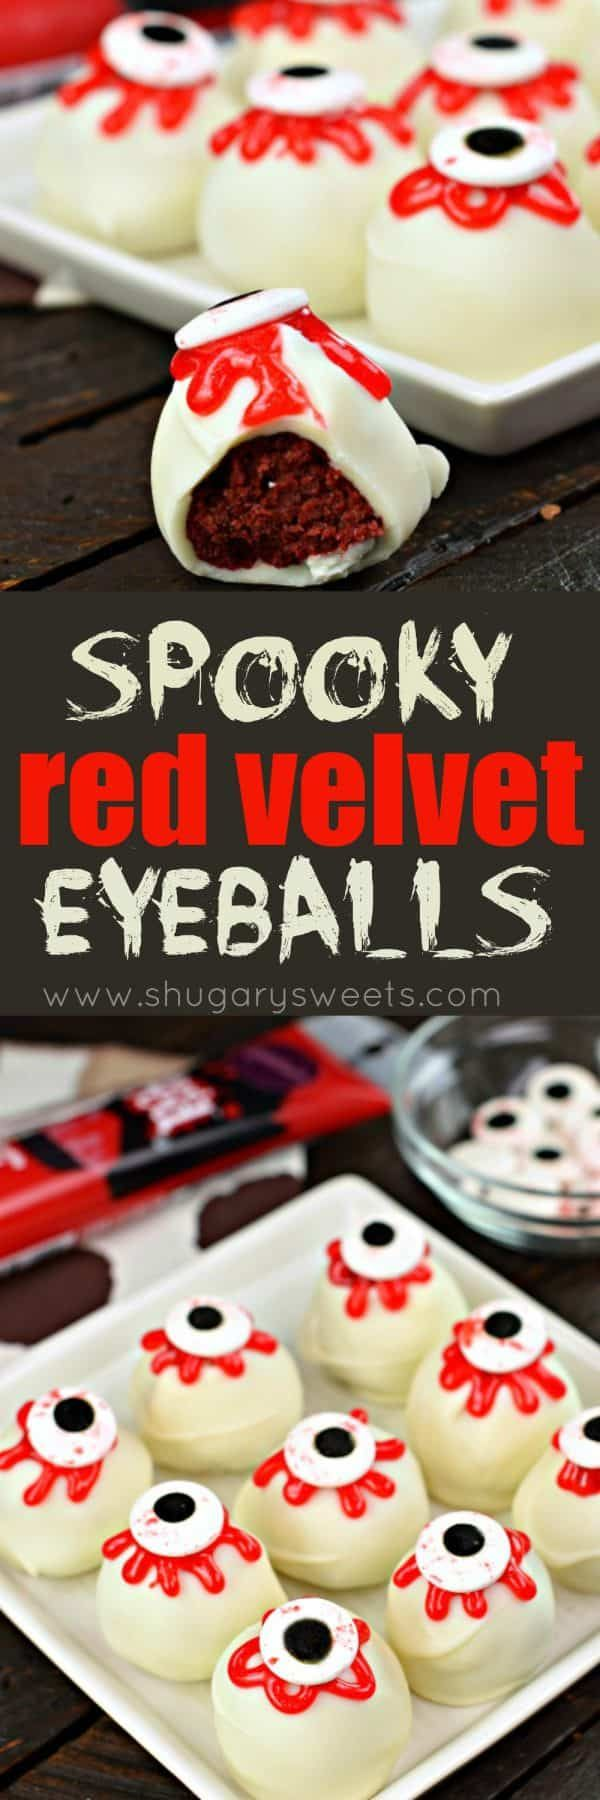 Spooky Eyeball Red Velvet Cake Balls Recipe